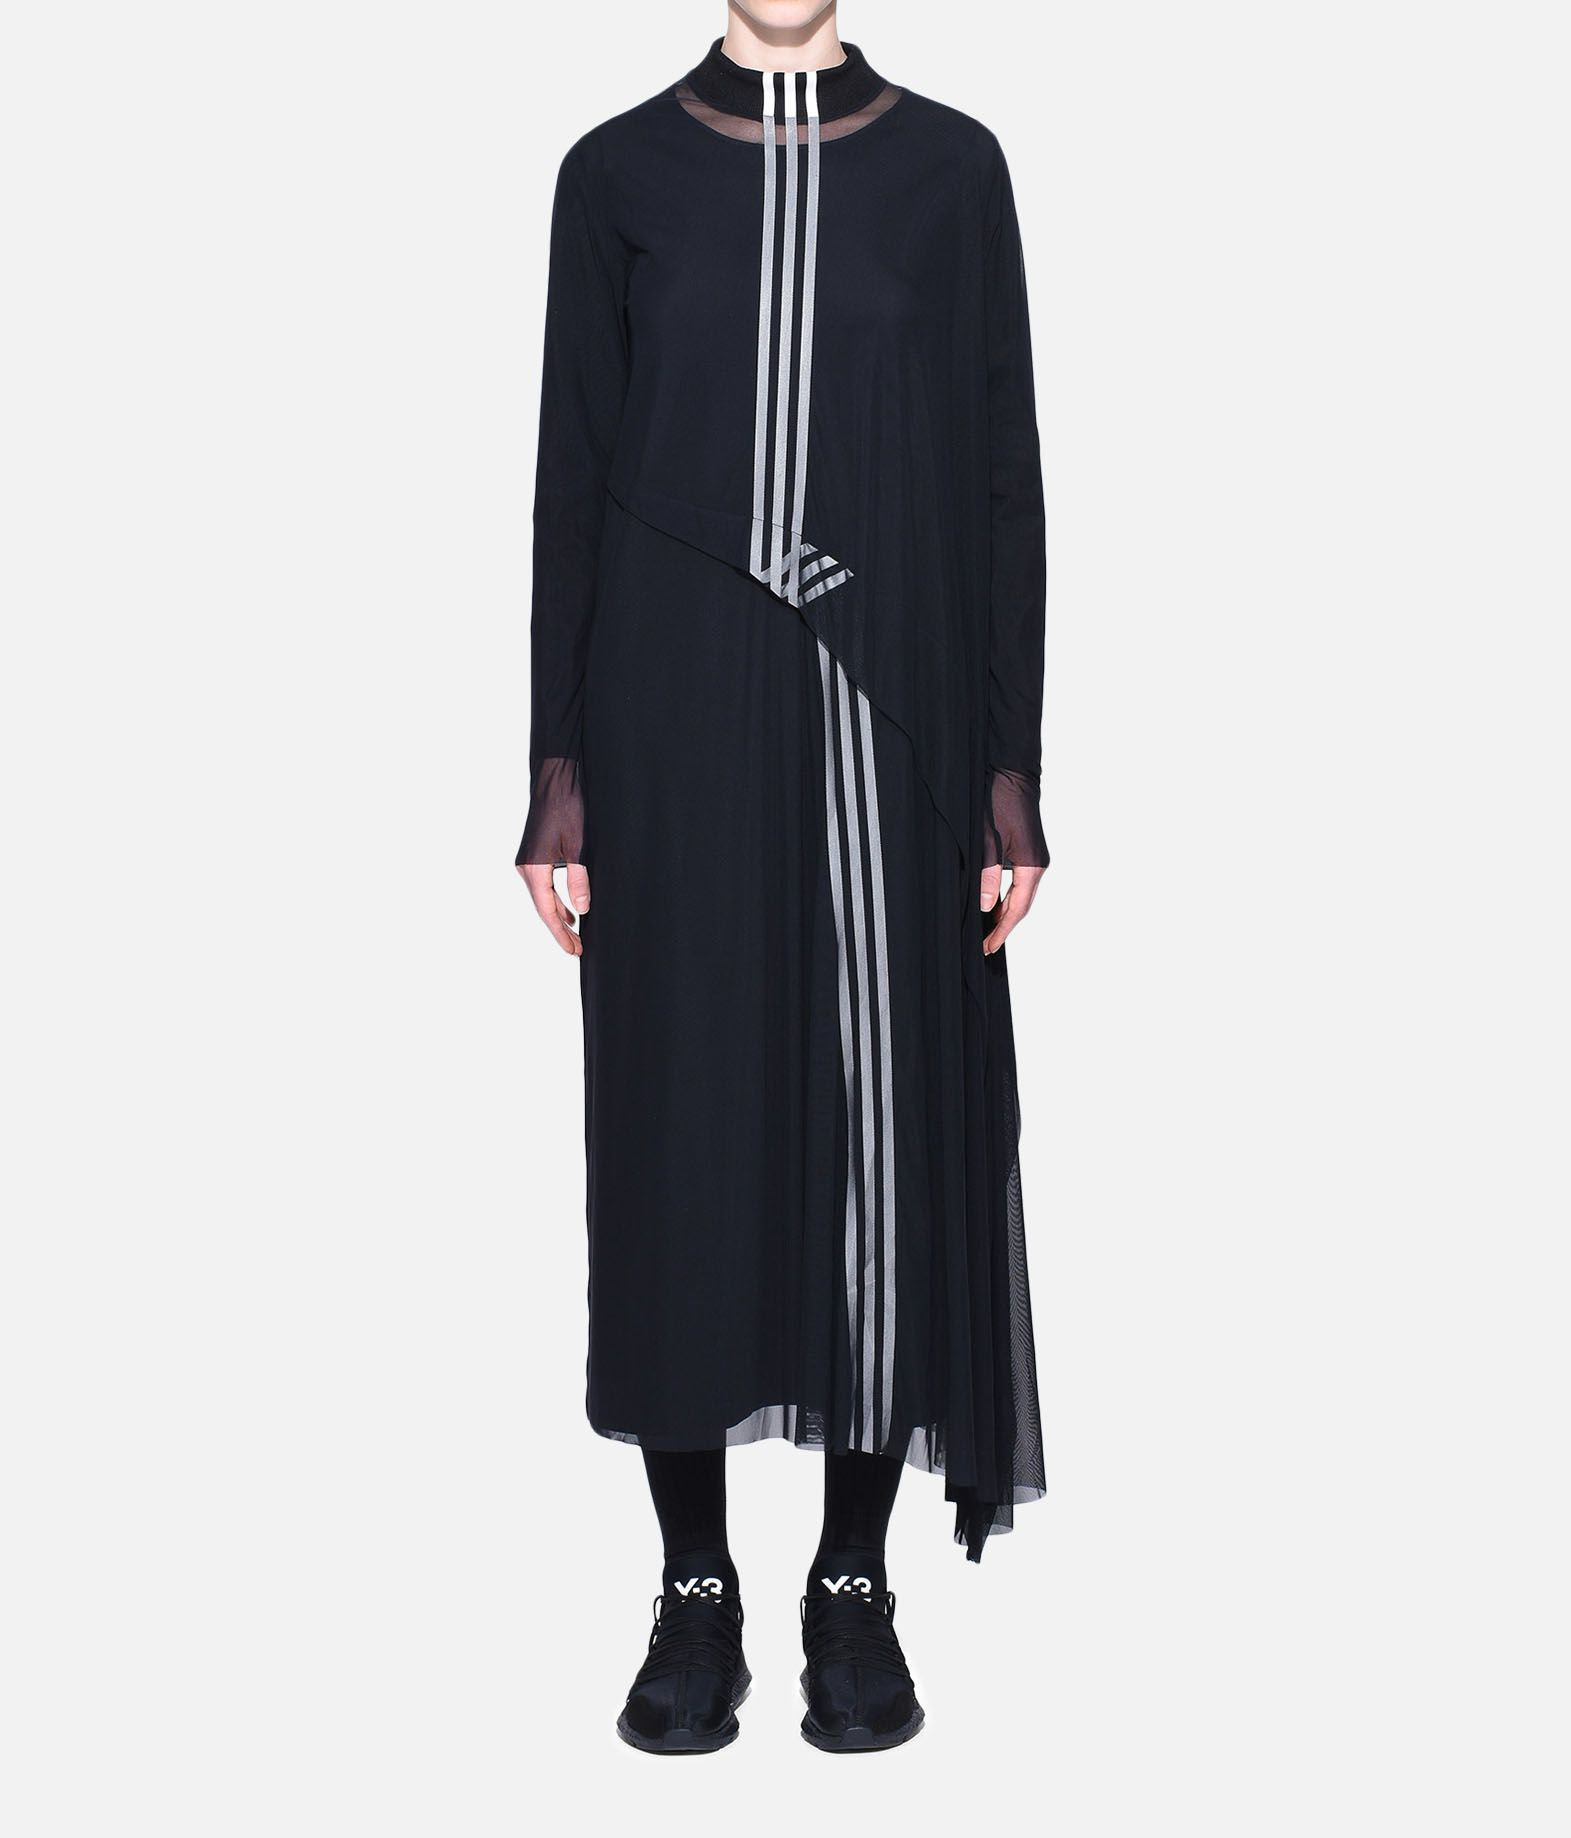 Y-3 Y-3 3-Stripes Mesh Dress Long dress Woman r